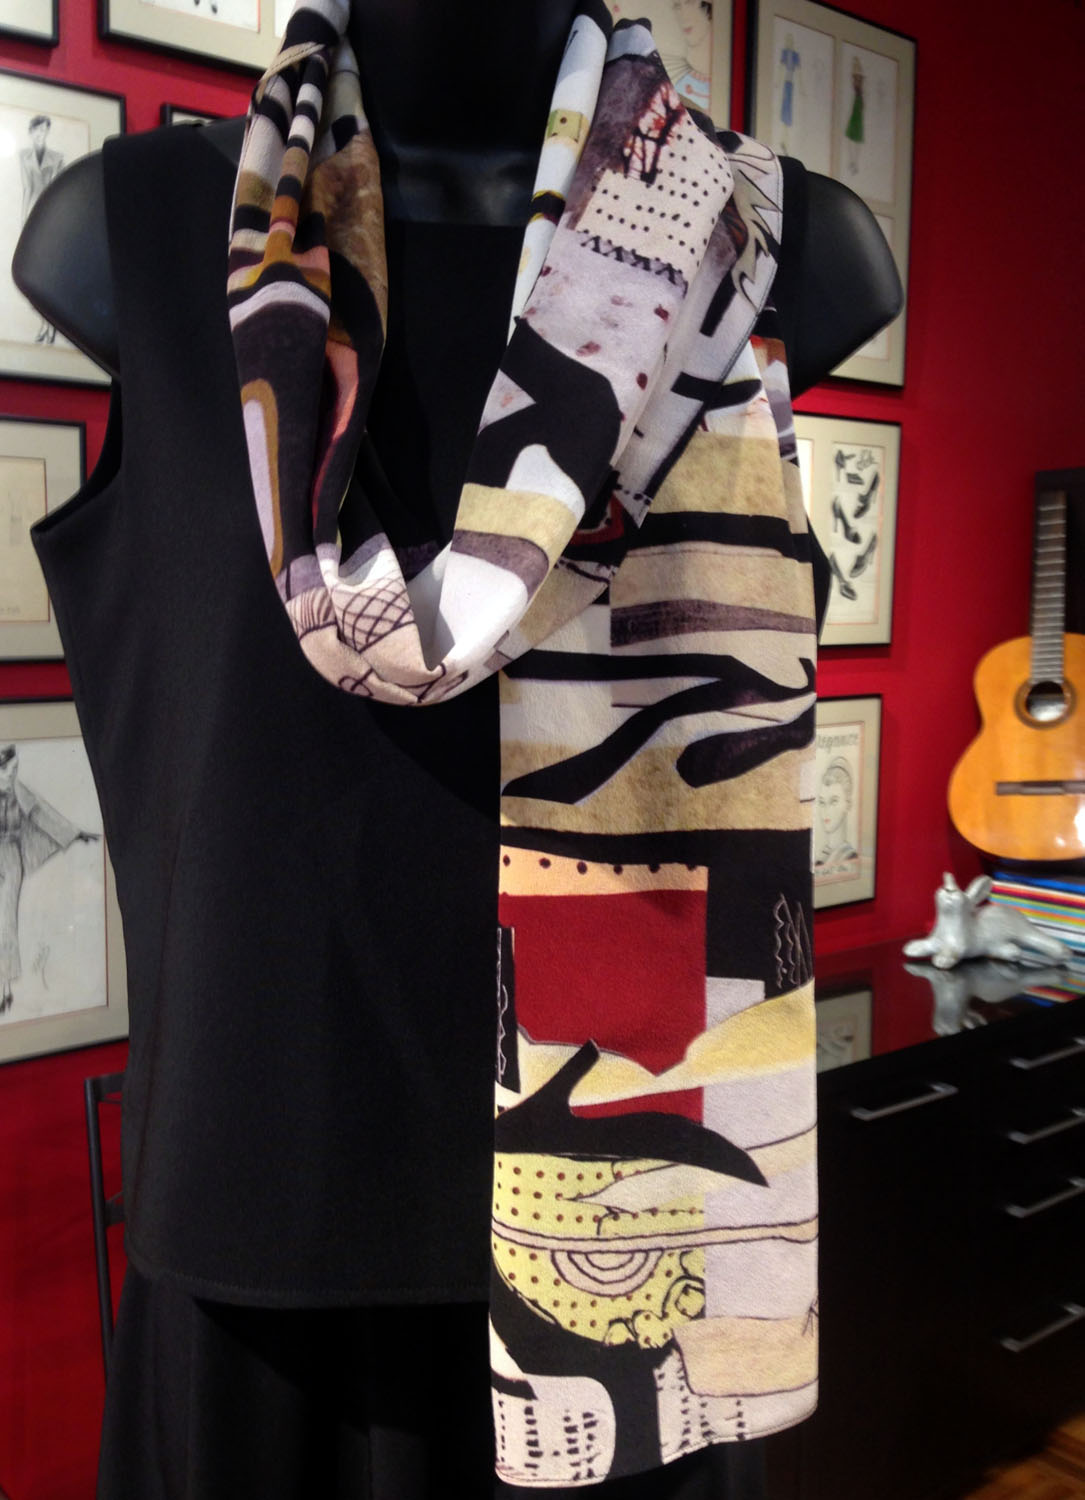 HLN-original design-black & white with splashes of color and texture-graphic-painterly abstract-silk scarf.jpg